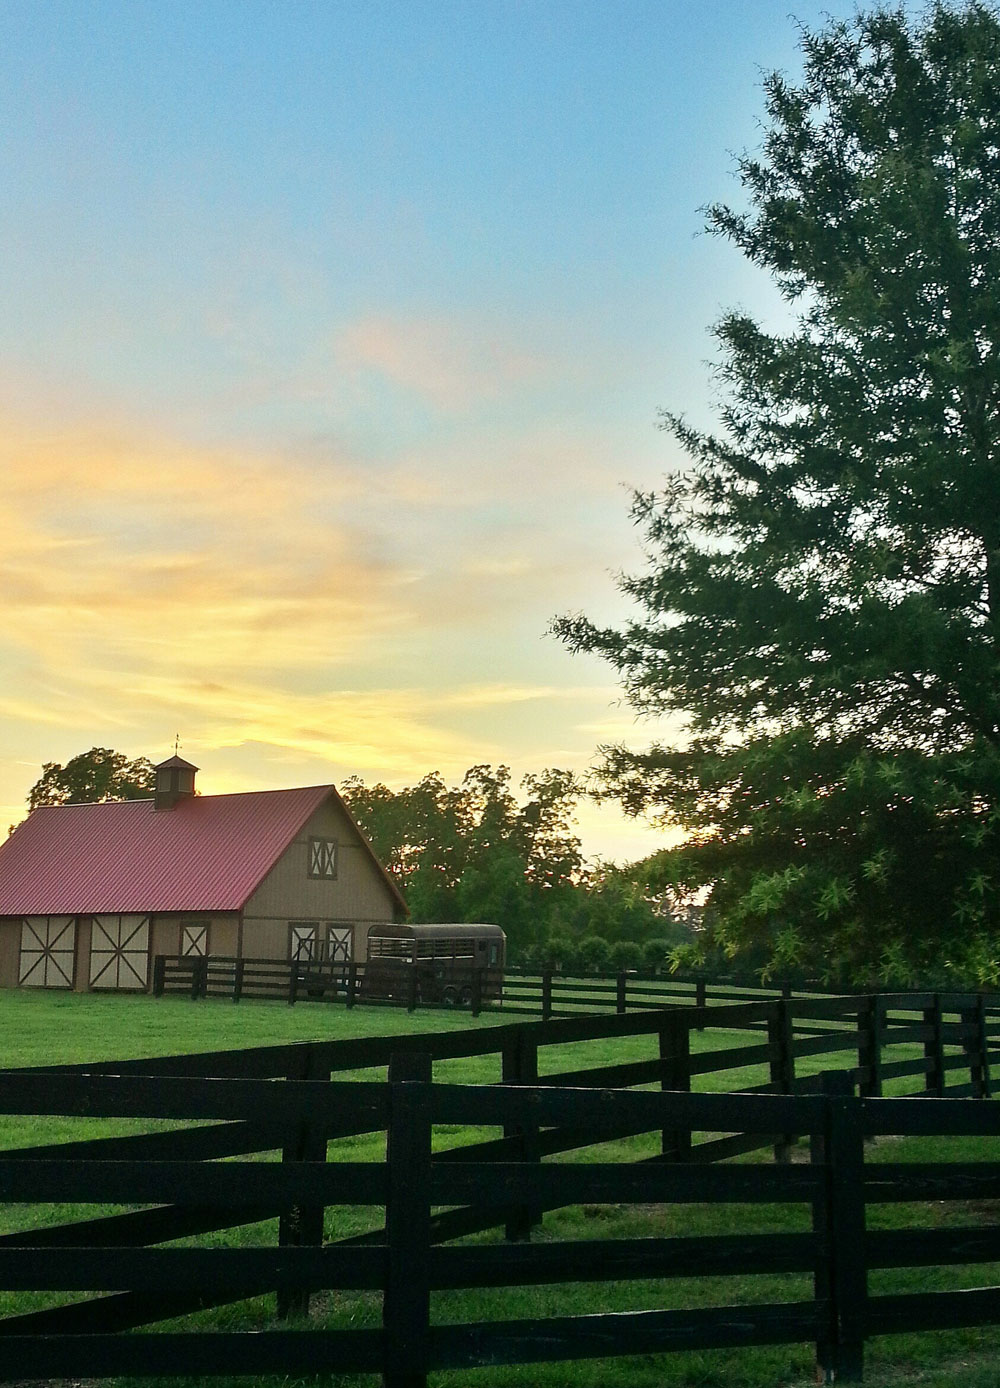 Barn and Sunset